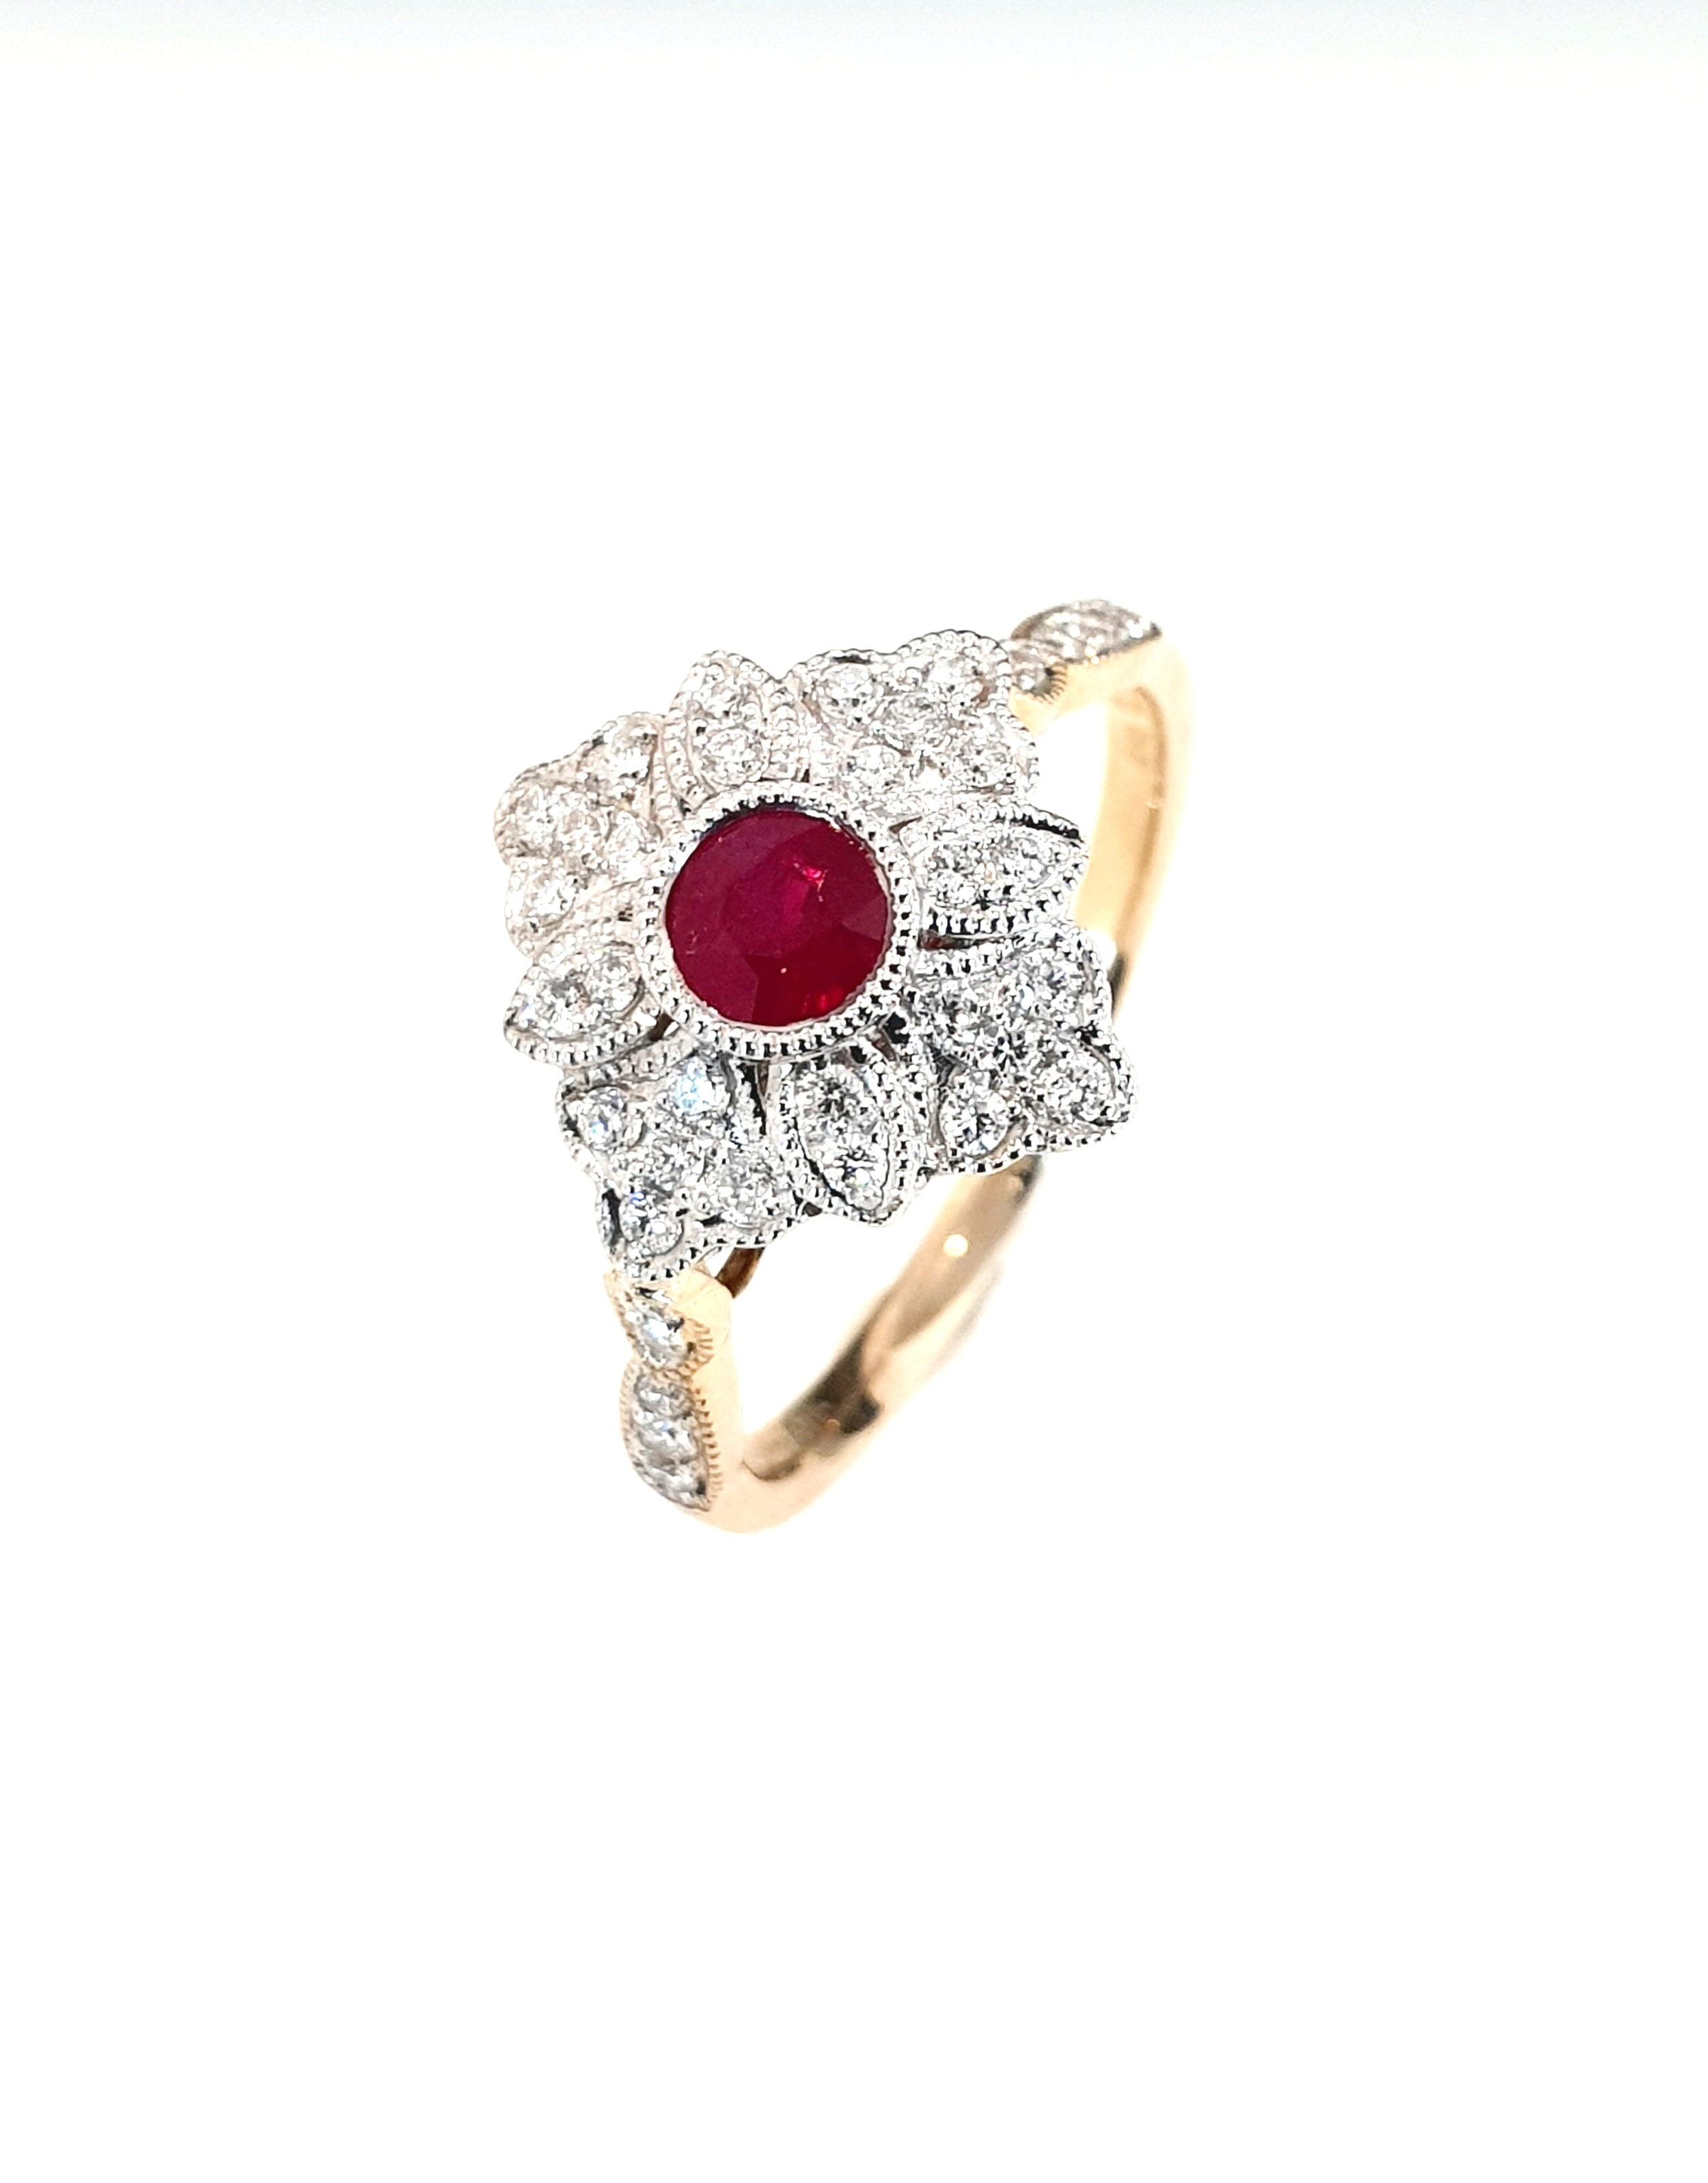 9ct Yellow Gold Ruby .33ct & Diamond .28ct Ring  Cluster Ring  Stock Code: G1953  £1050